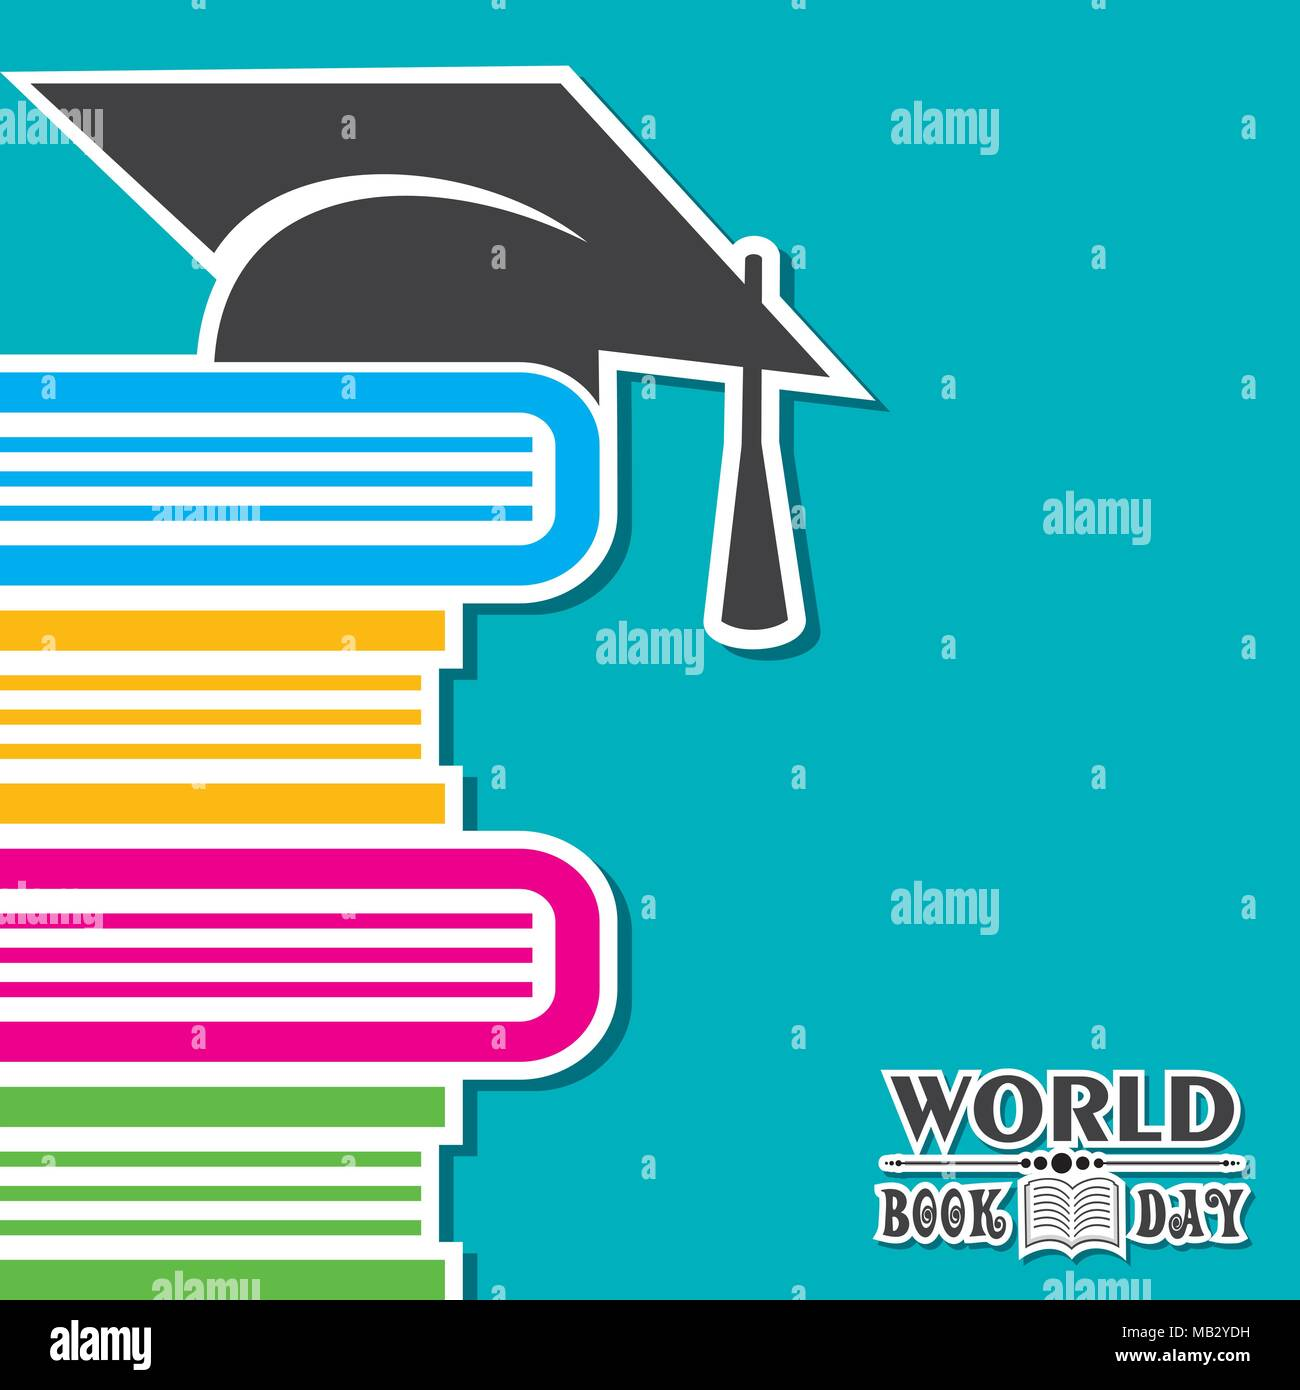 Vector Illustration of World Book Day - Education Concept Stock Vector